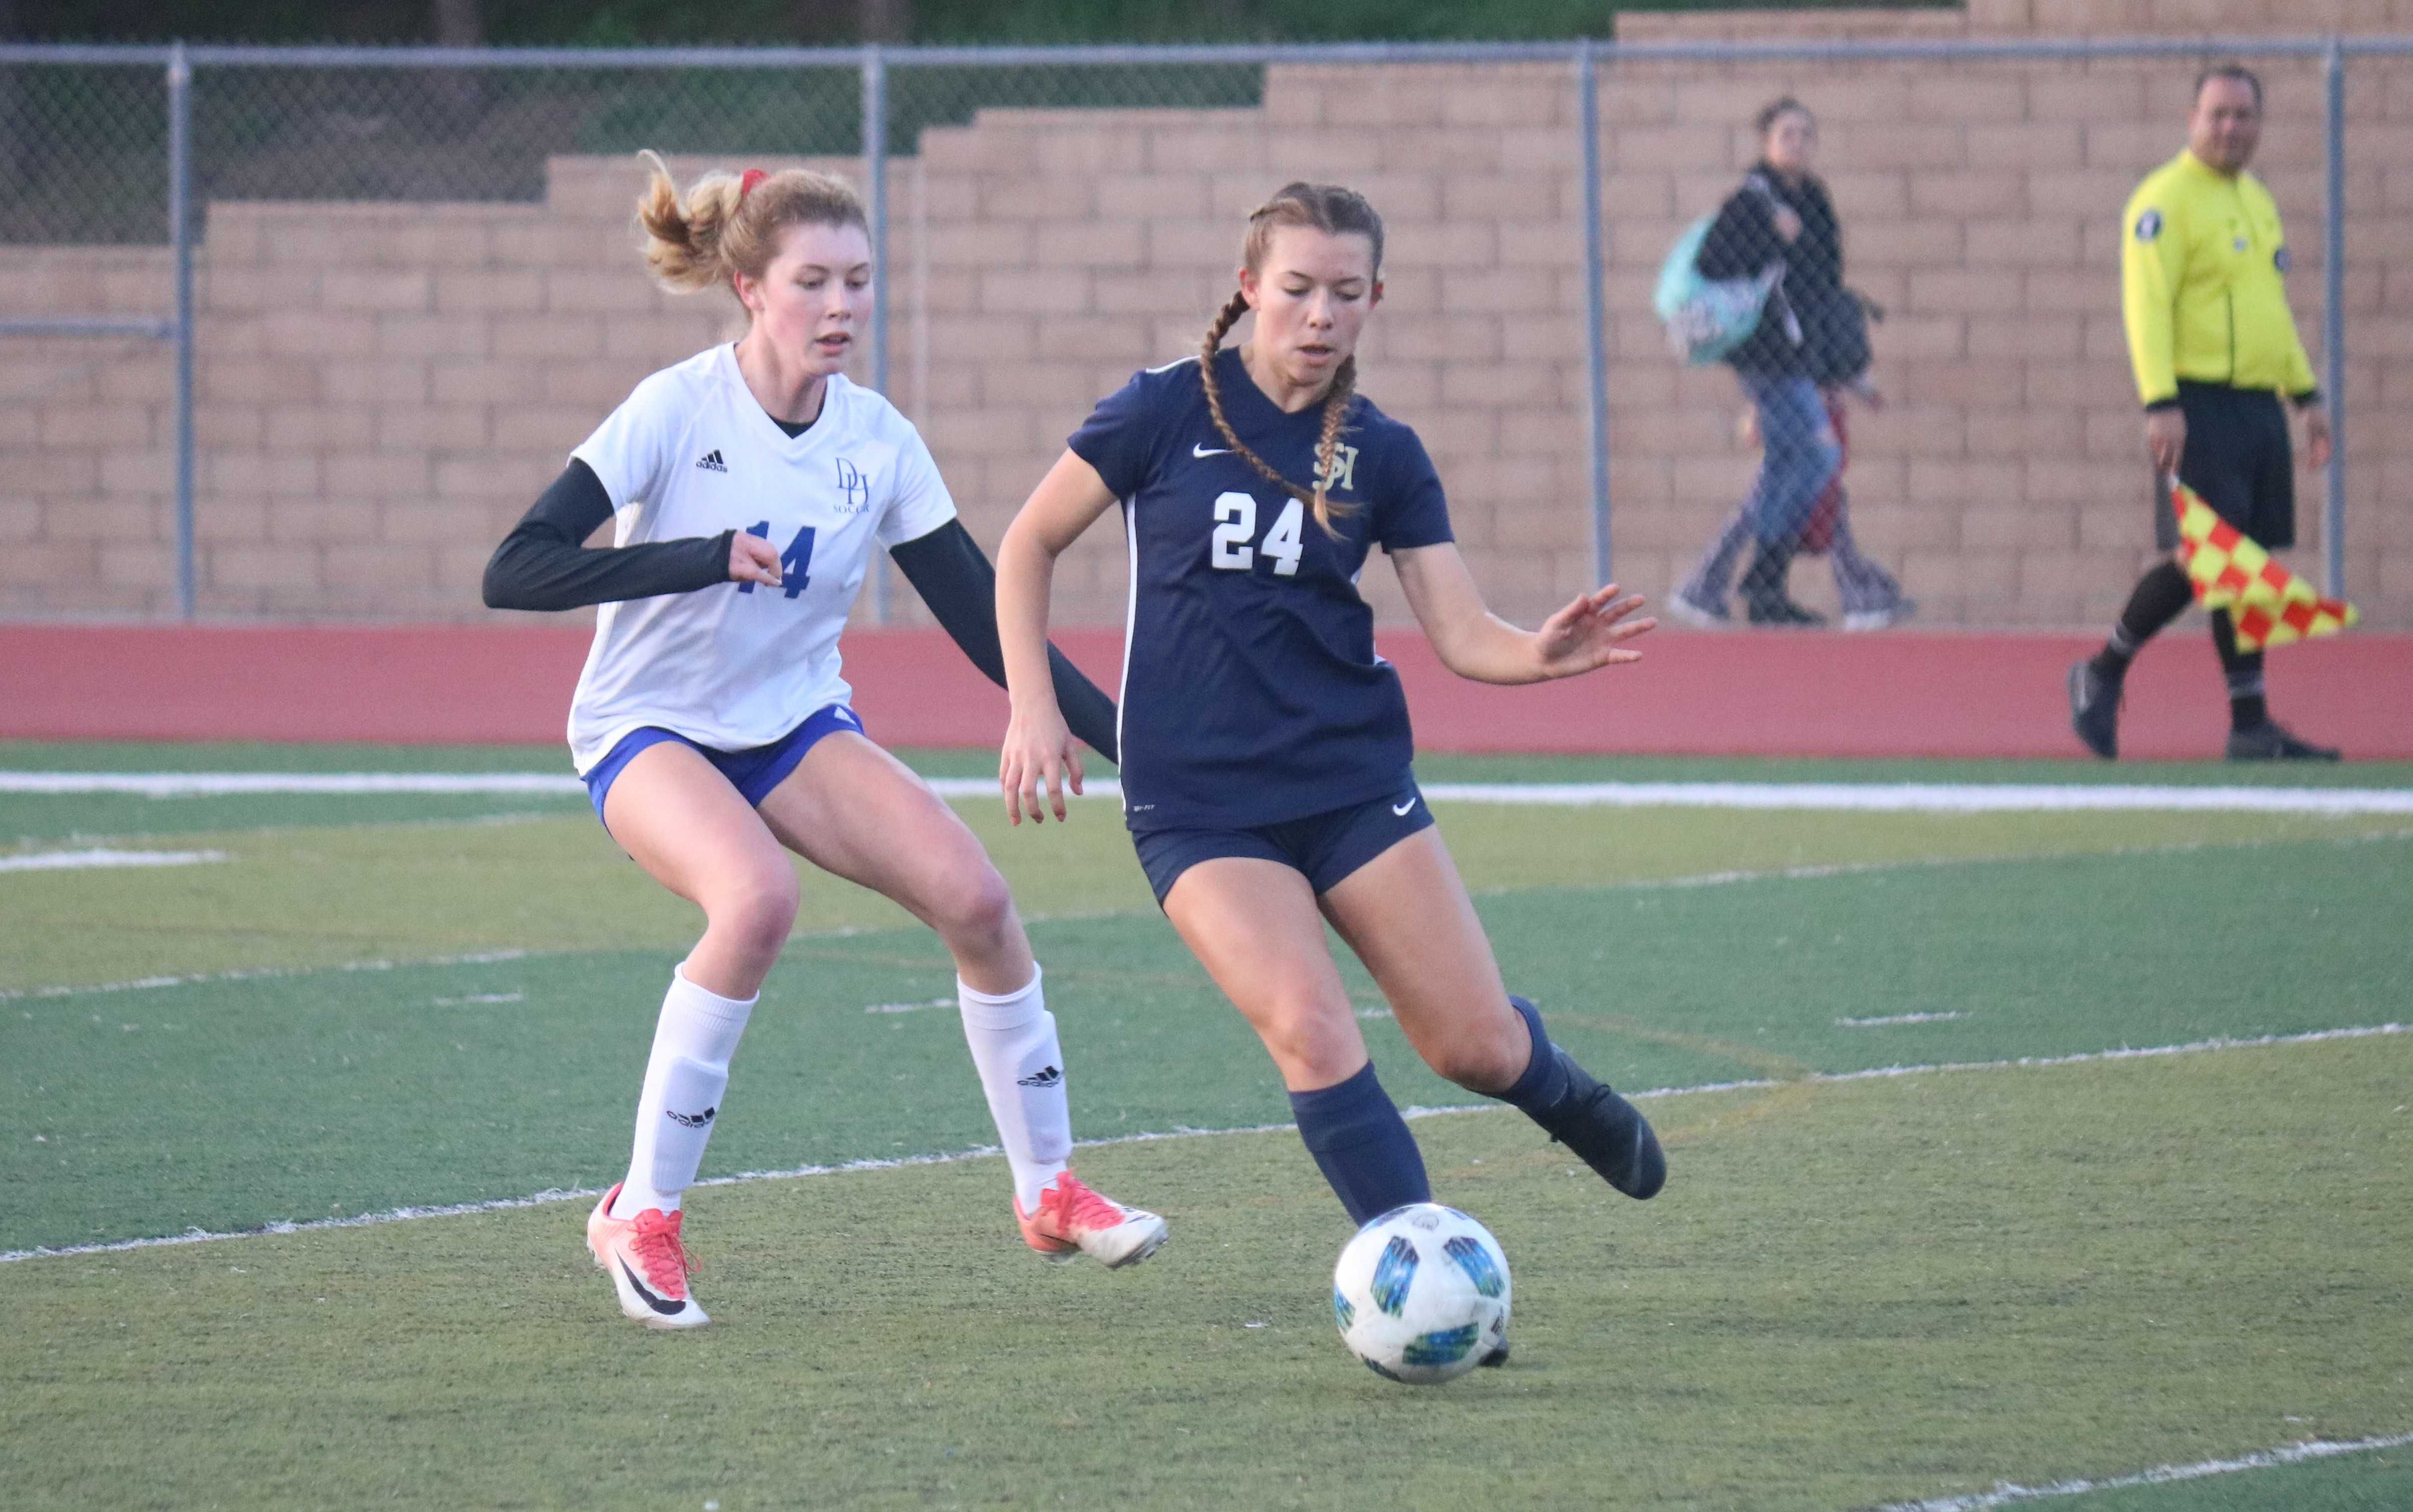 : The San Juan Hills girls soccer team has been competitive in its first season in the South Coast League and is fighting for playoff positioning down the stretch. Photo: Zach Cavanagh